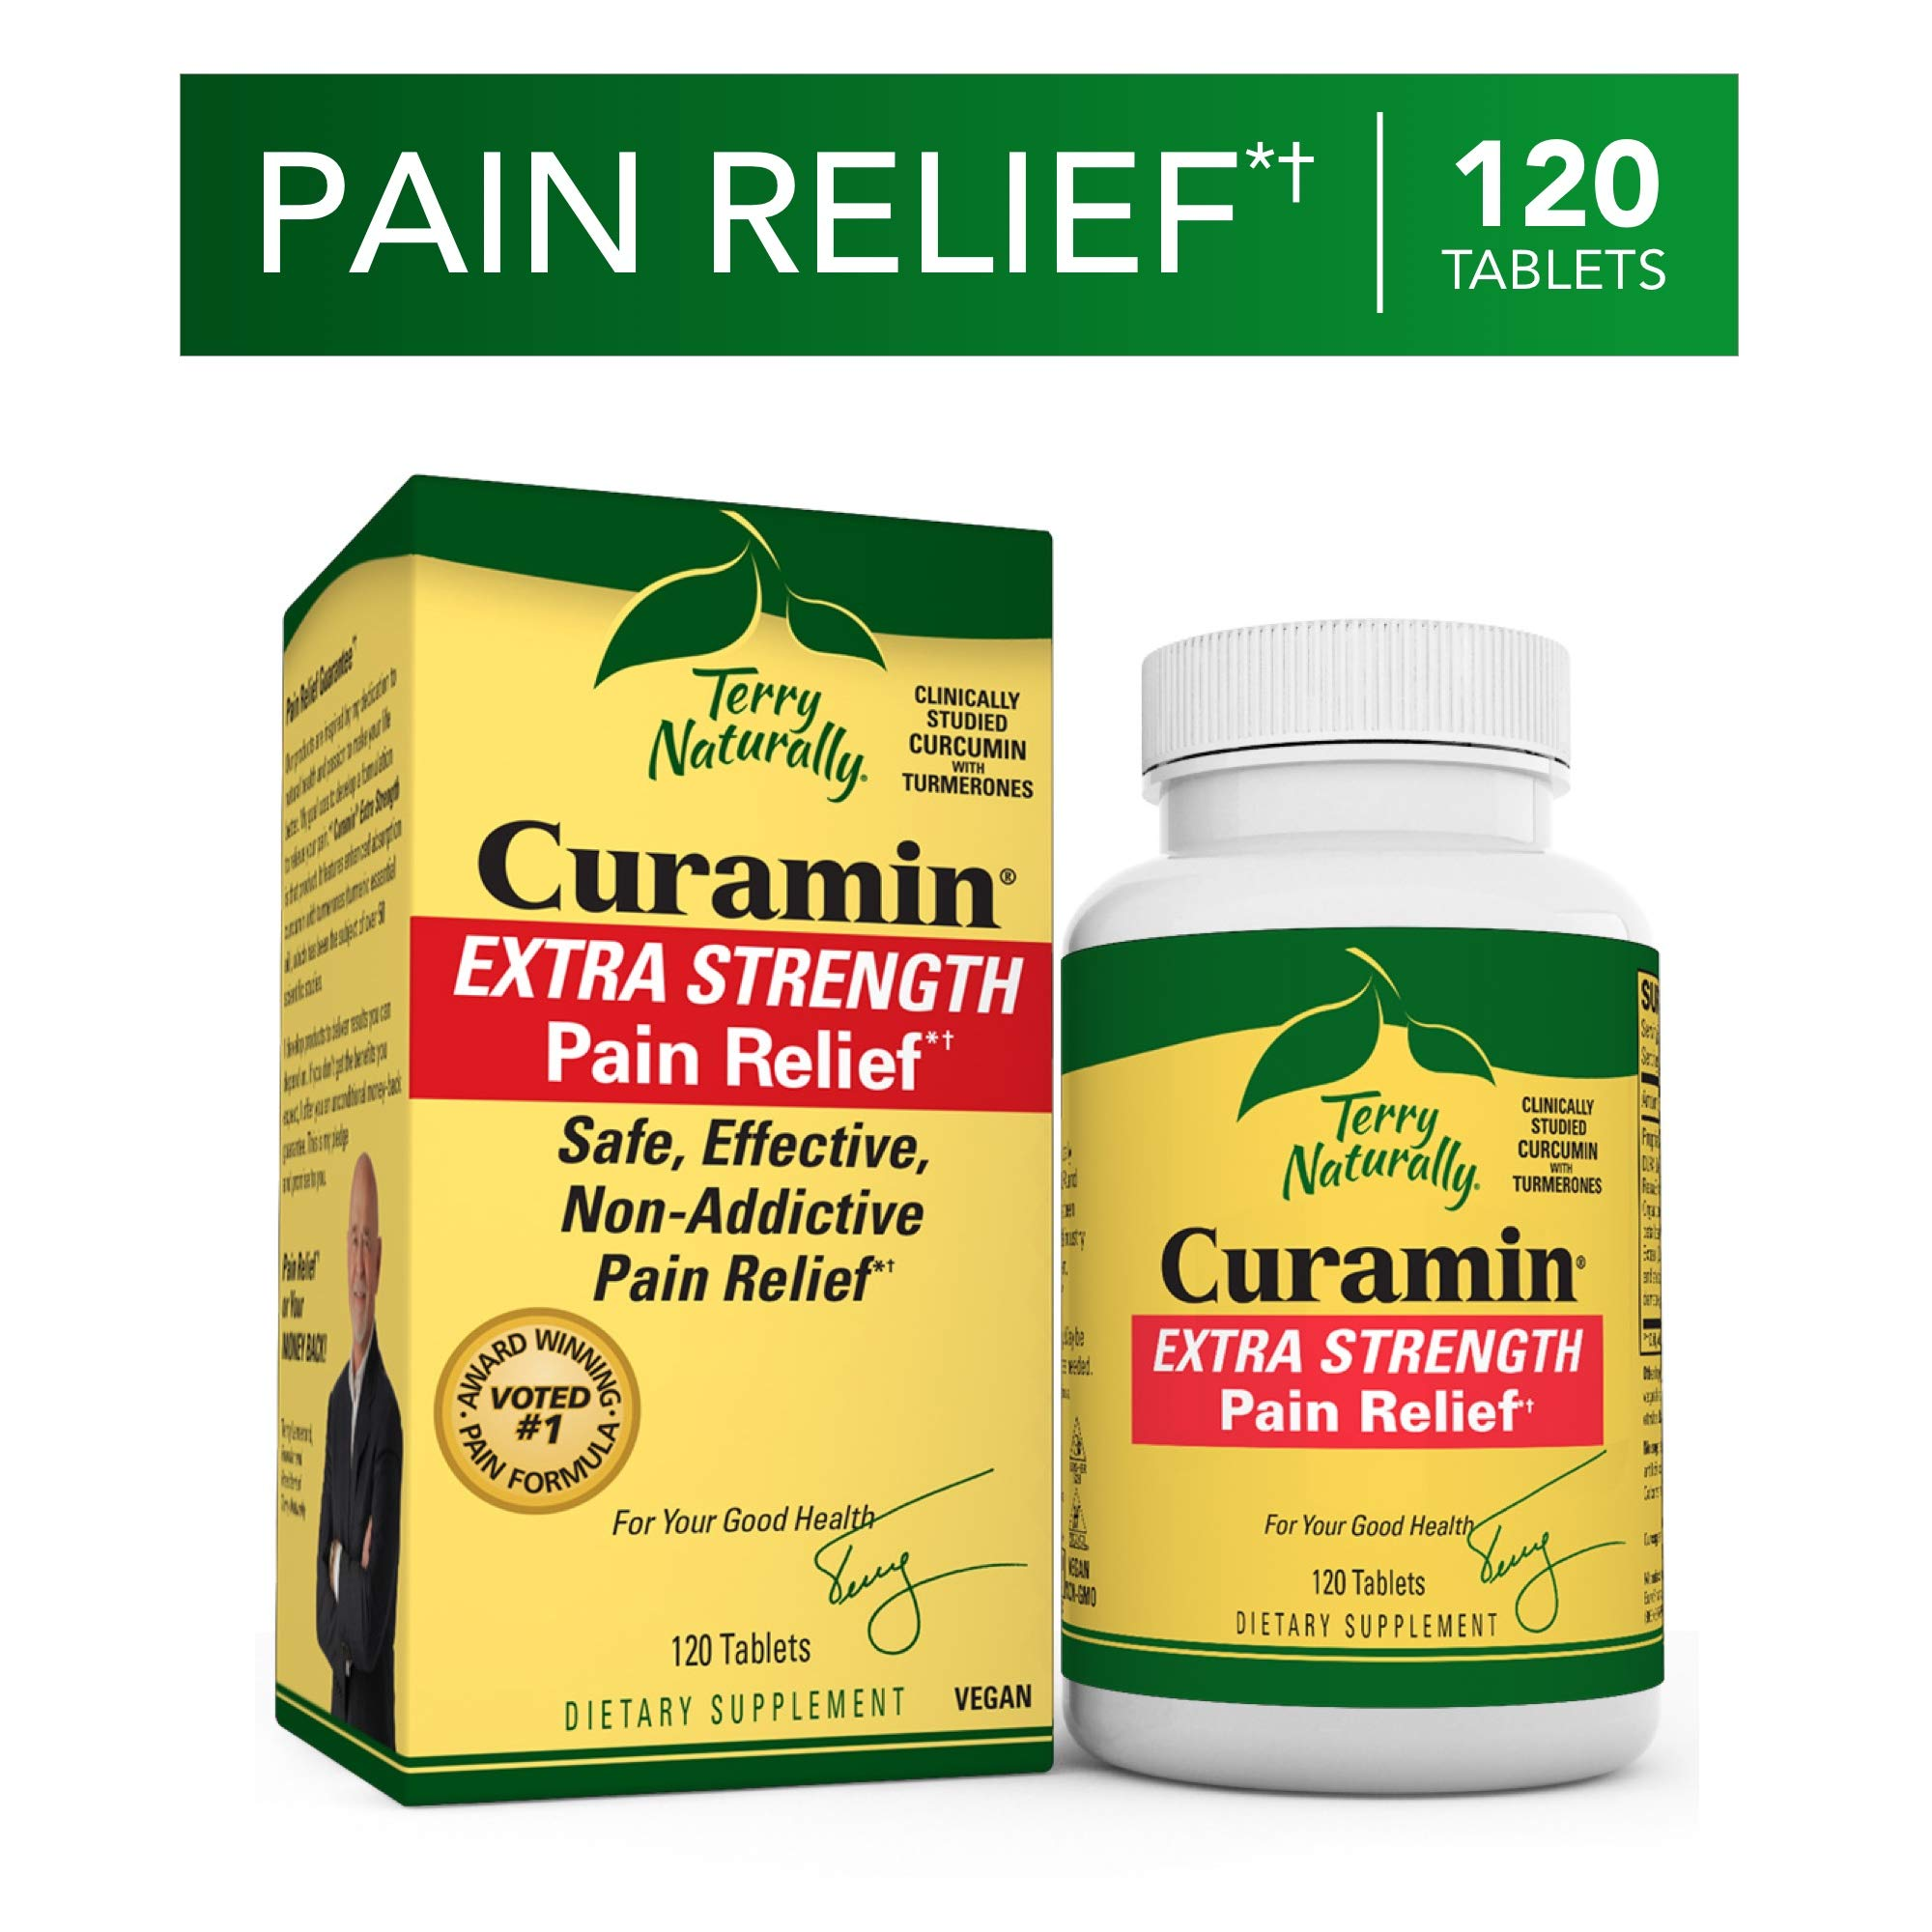 Terry Naturally Curamin Extra Strength - 120 Vegan Tablets - Non-Addictive Pain Relief Supplement with Curcumin from Turmeric, Boswellia & DLPA - Non-GMO, Gluten-Free - 40 Servings by Terry Naturally